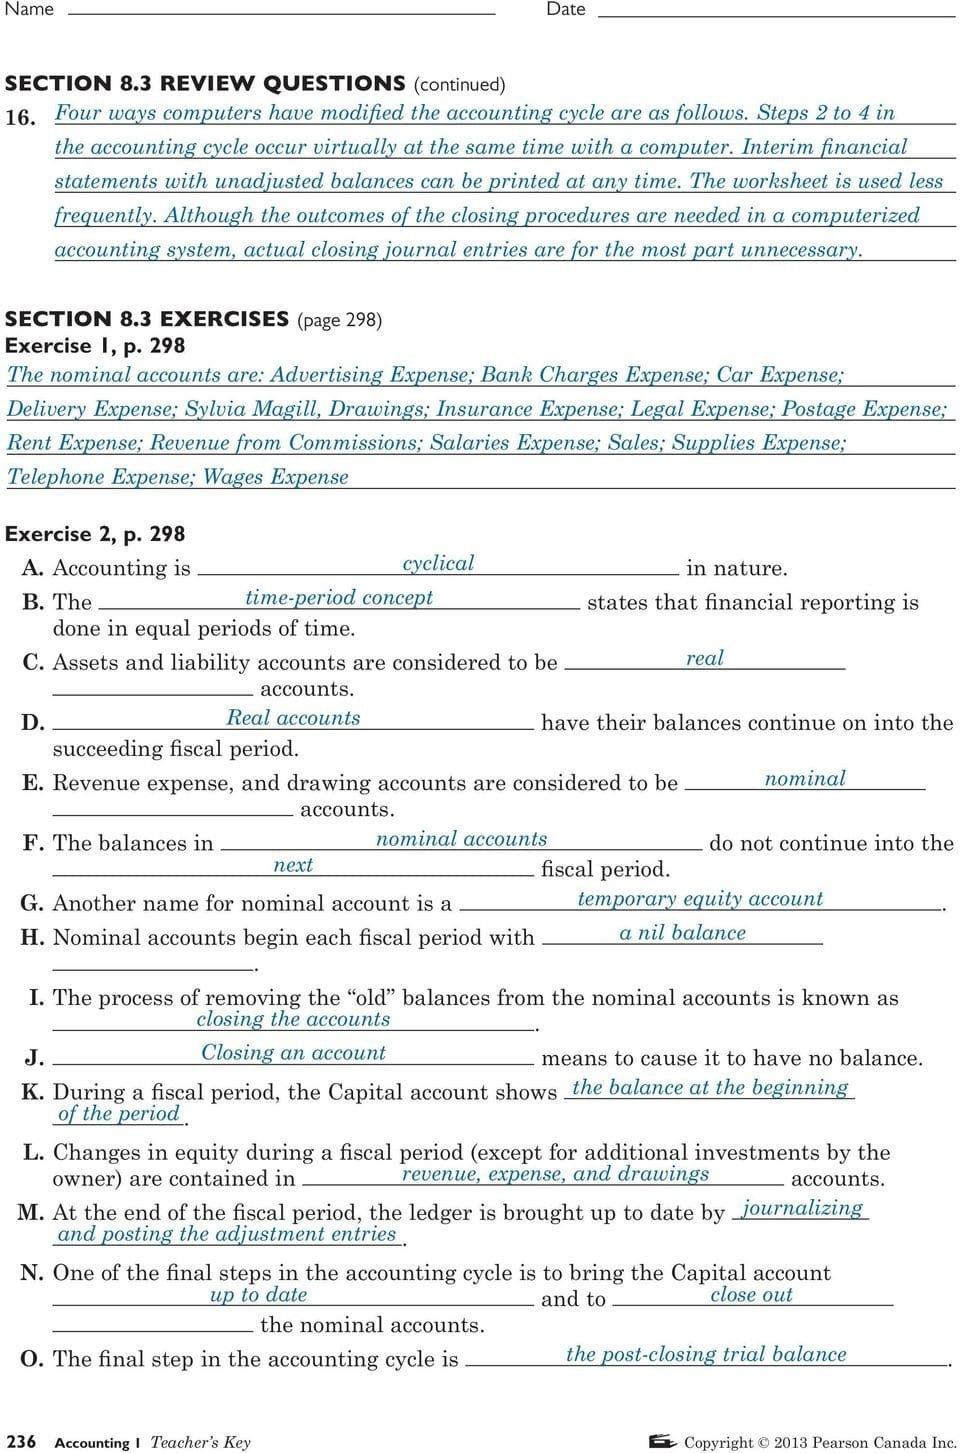 Section 81 Review Questions Page 275  Pdf As Well As Computer Basics Worksheet Section 8